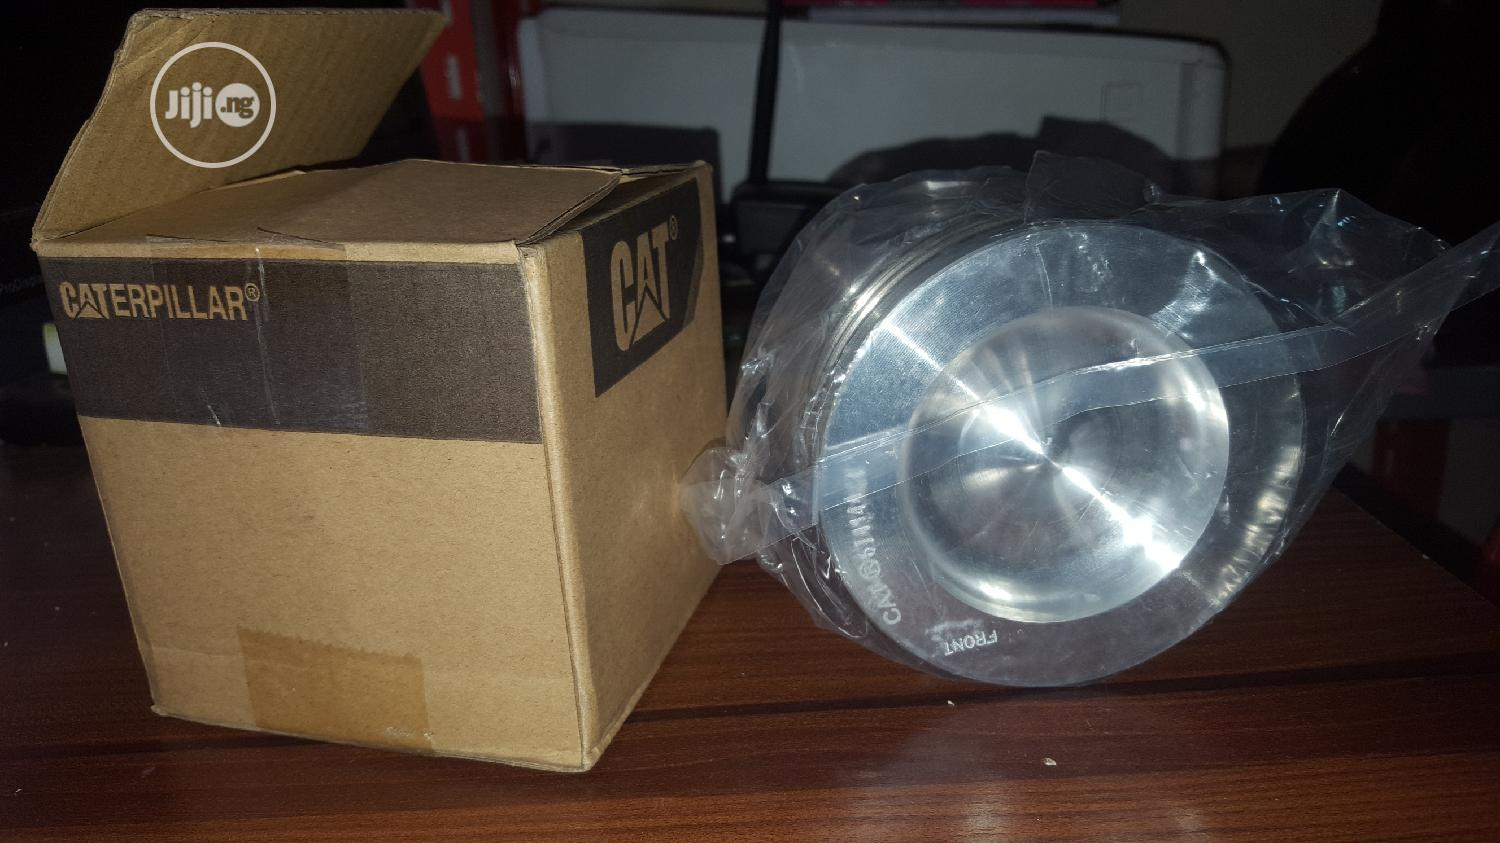 Piston Kit Part 611144 Set 3116 For All Caterpillars. Lagos | Vehicle Parts & Accessories for sale in Badagry, Lagos State, Nigeria